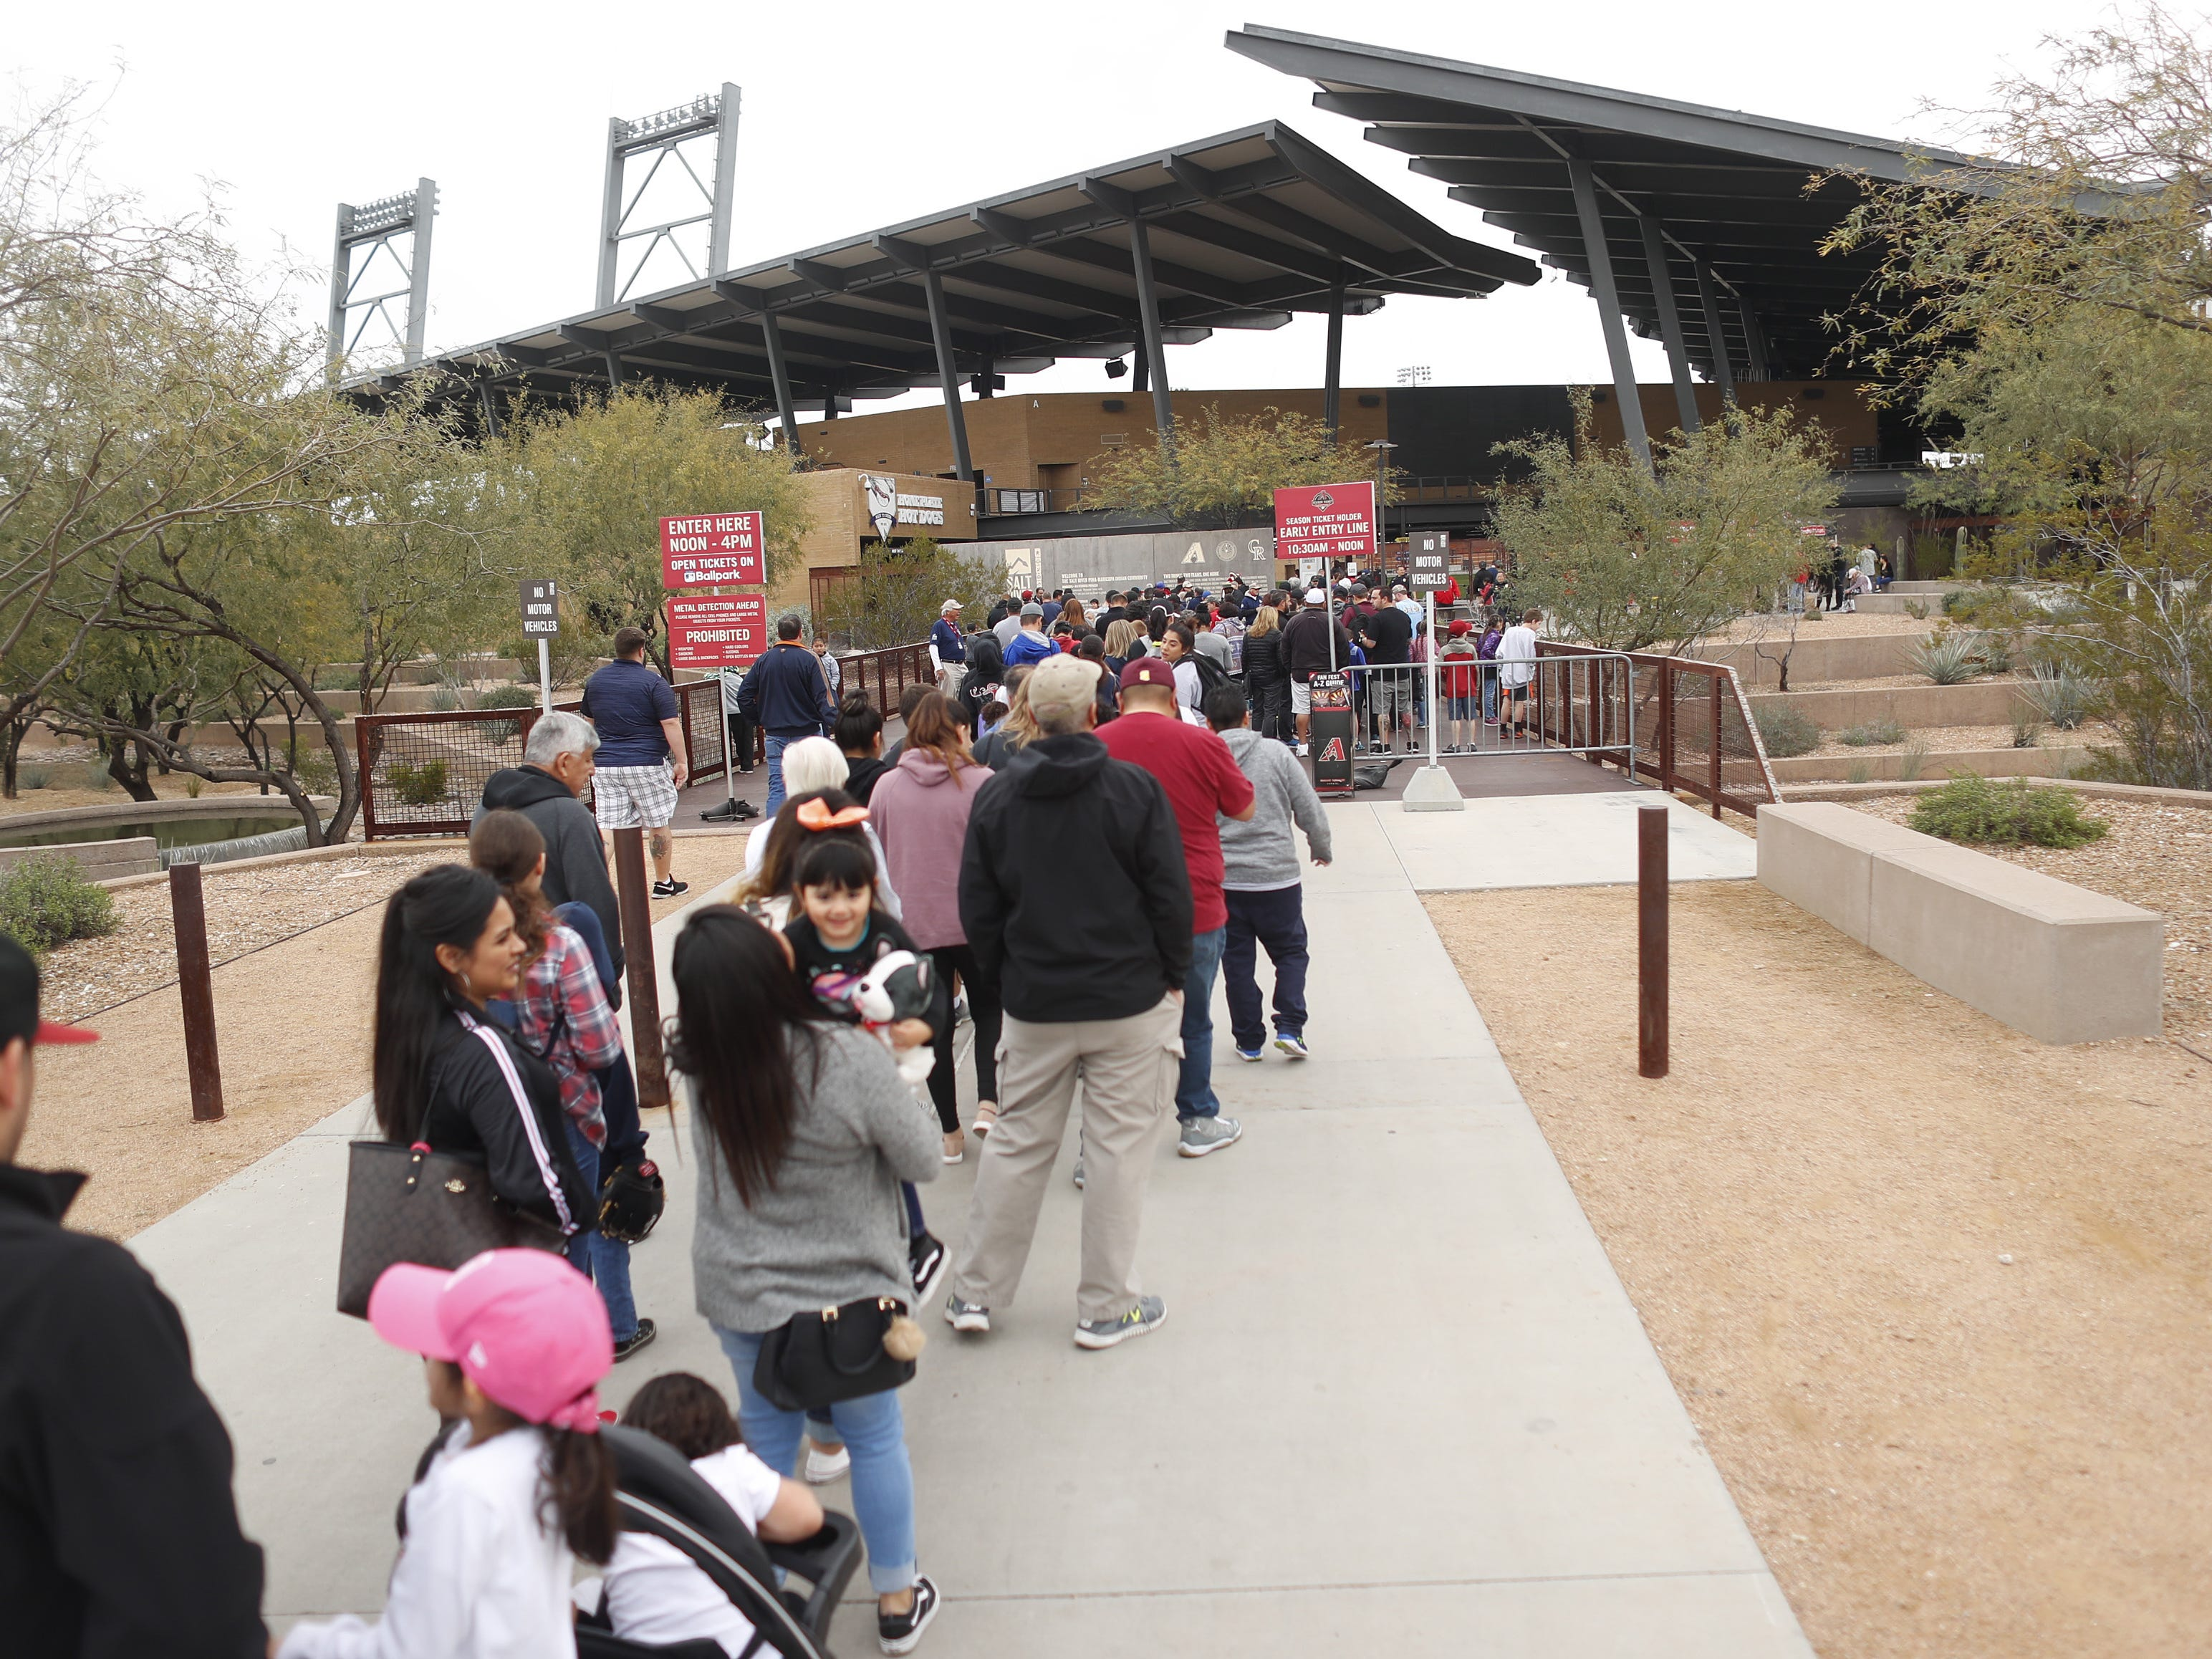 Fans line up for entry into the Diamondbacks Fan Fest at Salt River at Talking Sticks on February 9, 2019.